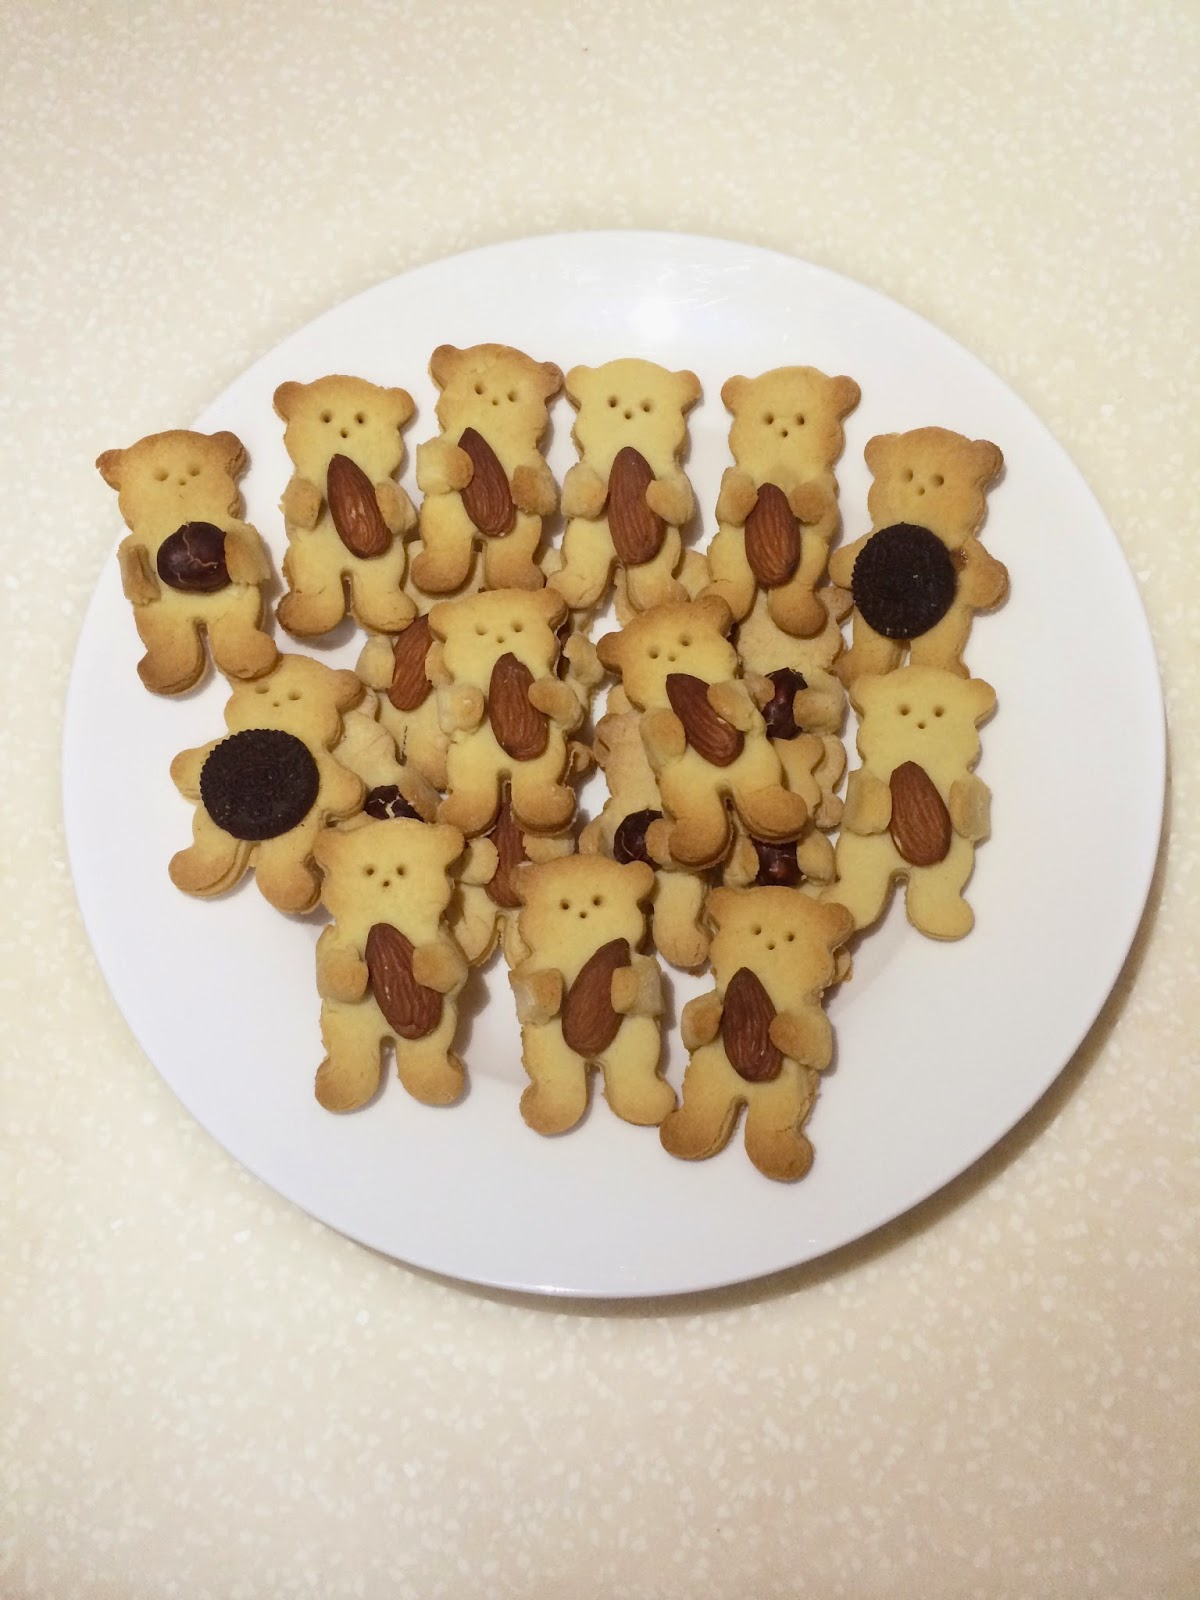 that I saw a post from 9gag about really cute bear hugging nut cookies ...